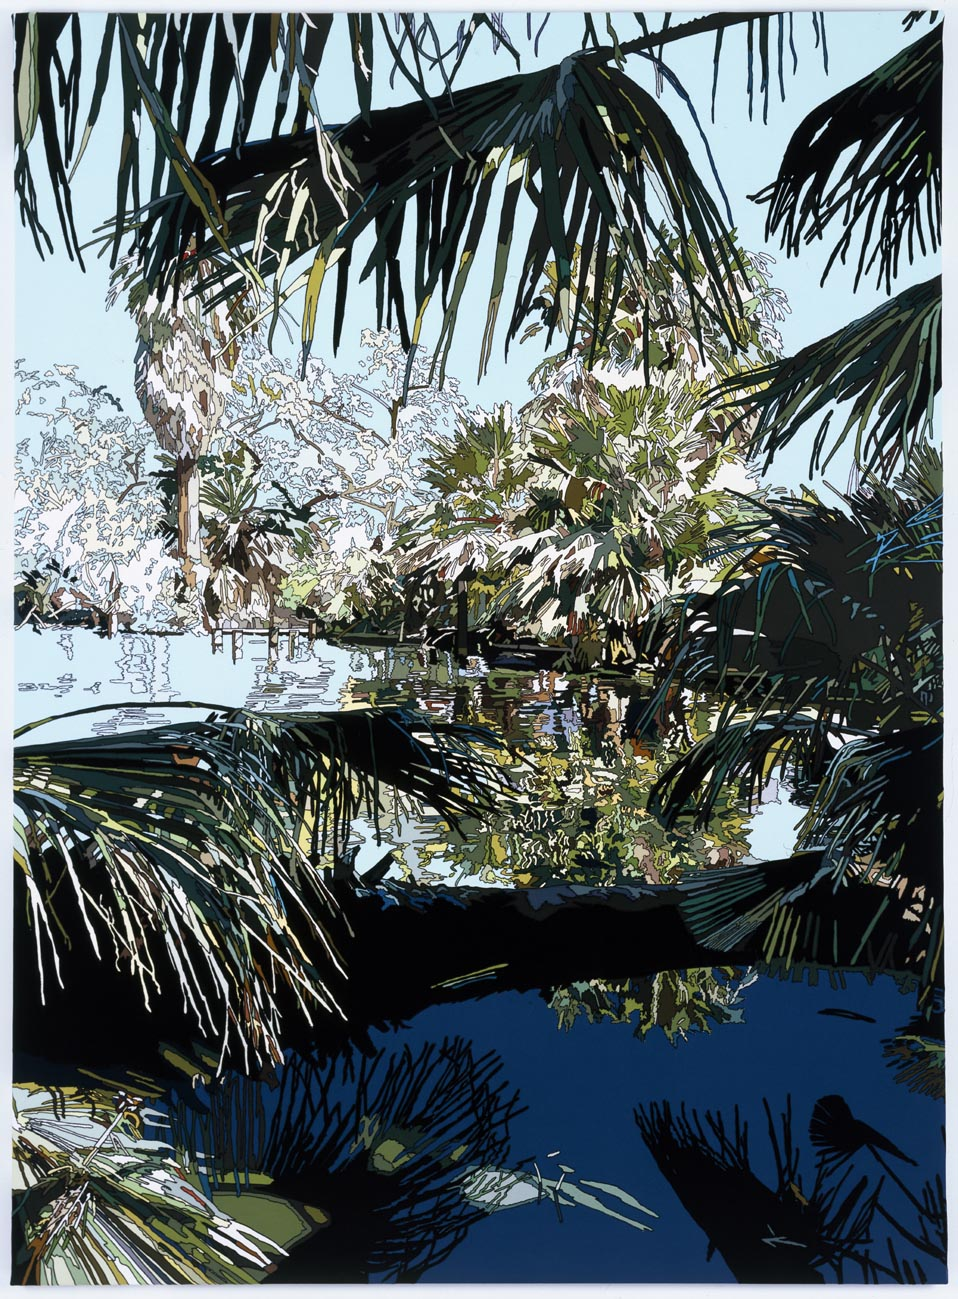 Rowena Dring, Oasis of Mara, 2008, stitched fabrics on canvas, 225 x 2165 cm